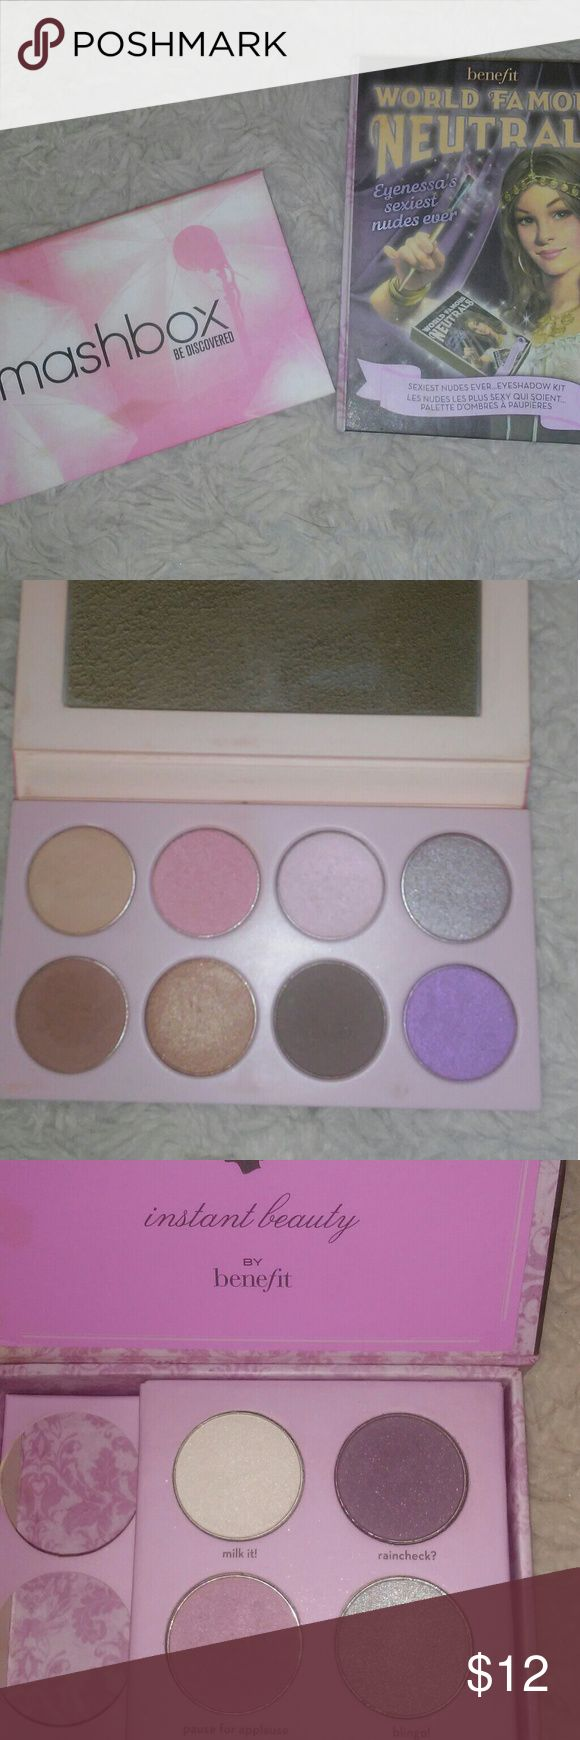 Smashbox & Benefit Eyeshadow Palette Bundle Smashbox & Benefit Eyeshadow Palettes. Great mix of warm and cool shimmers and mattes. Blend well and long wearing. Pretty colors! Benefit Makeup